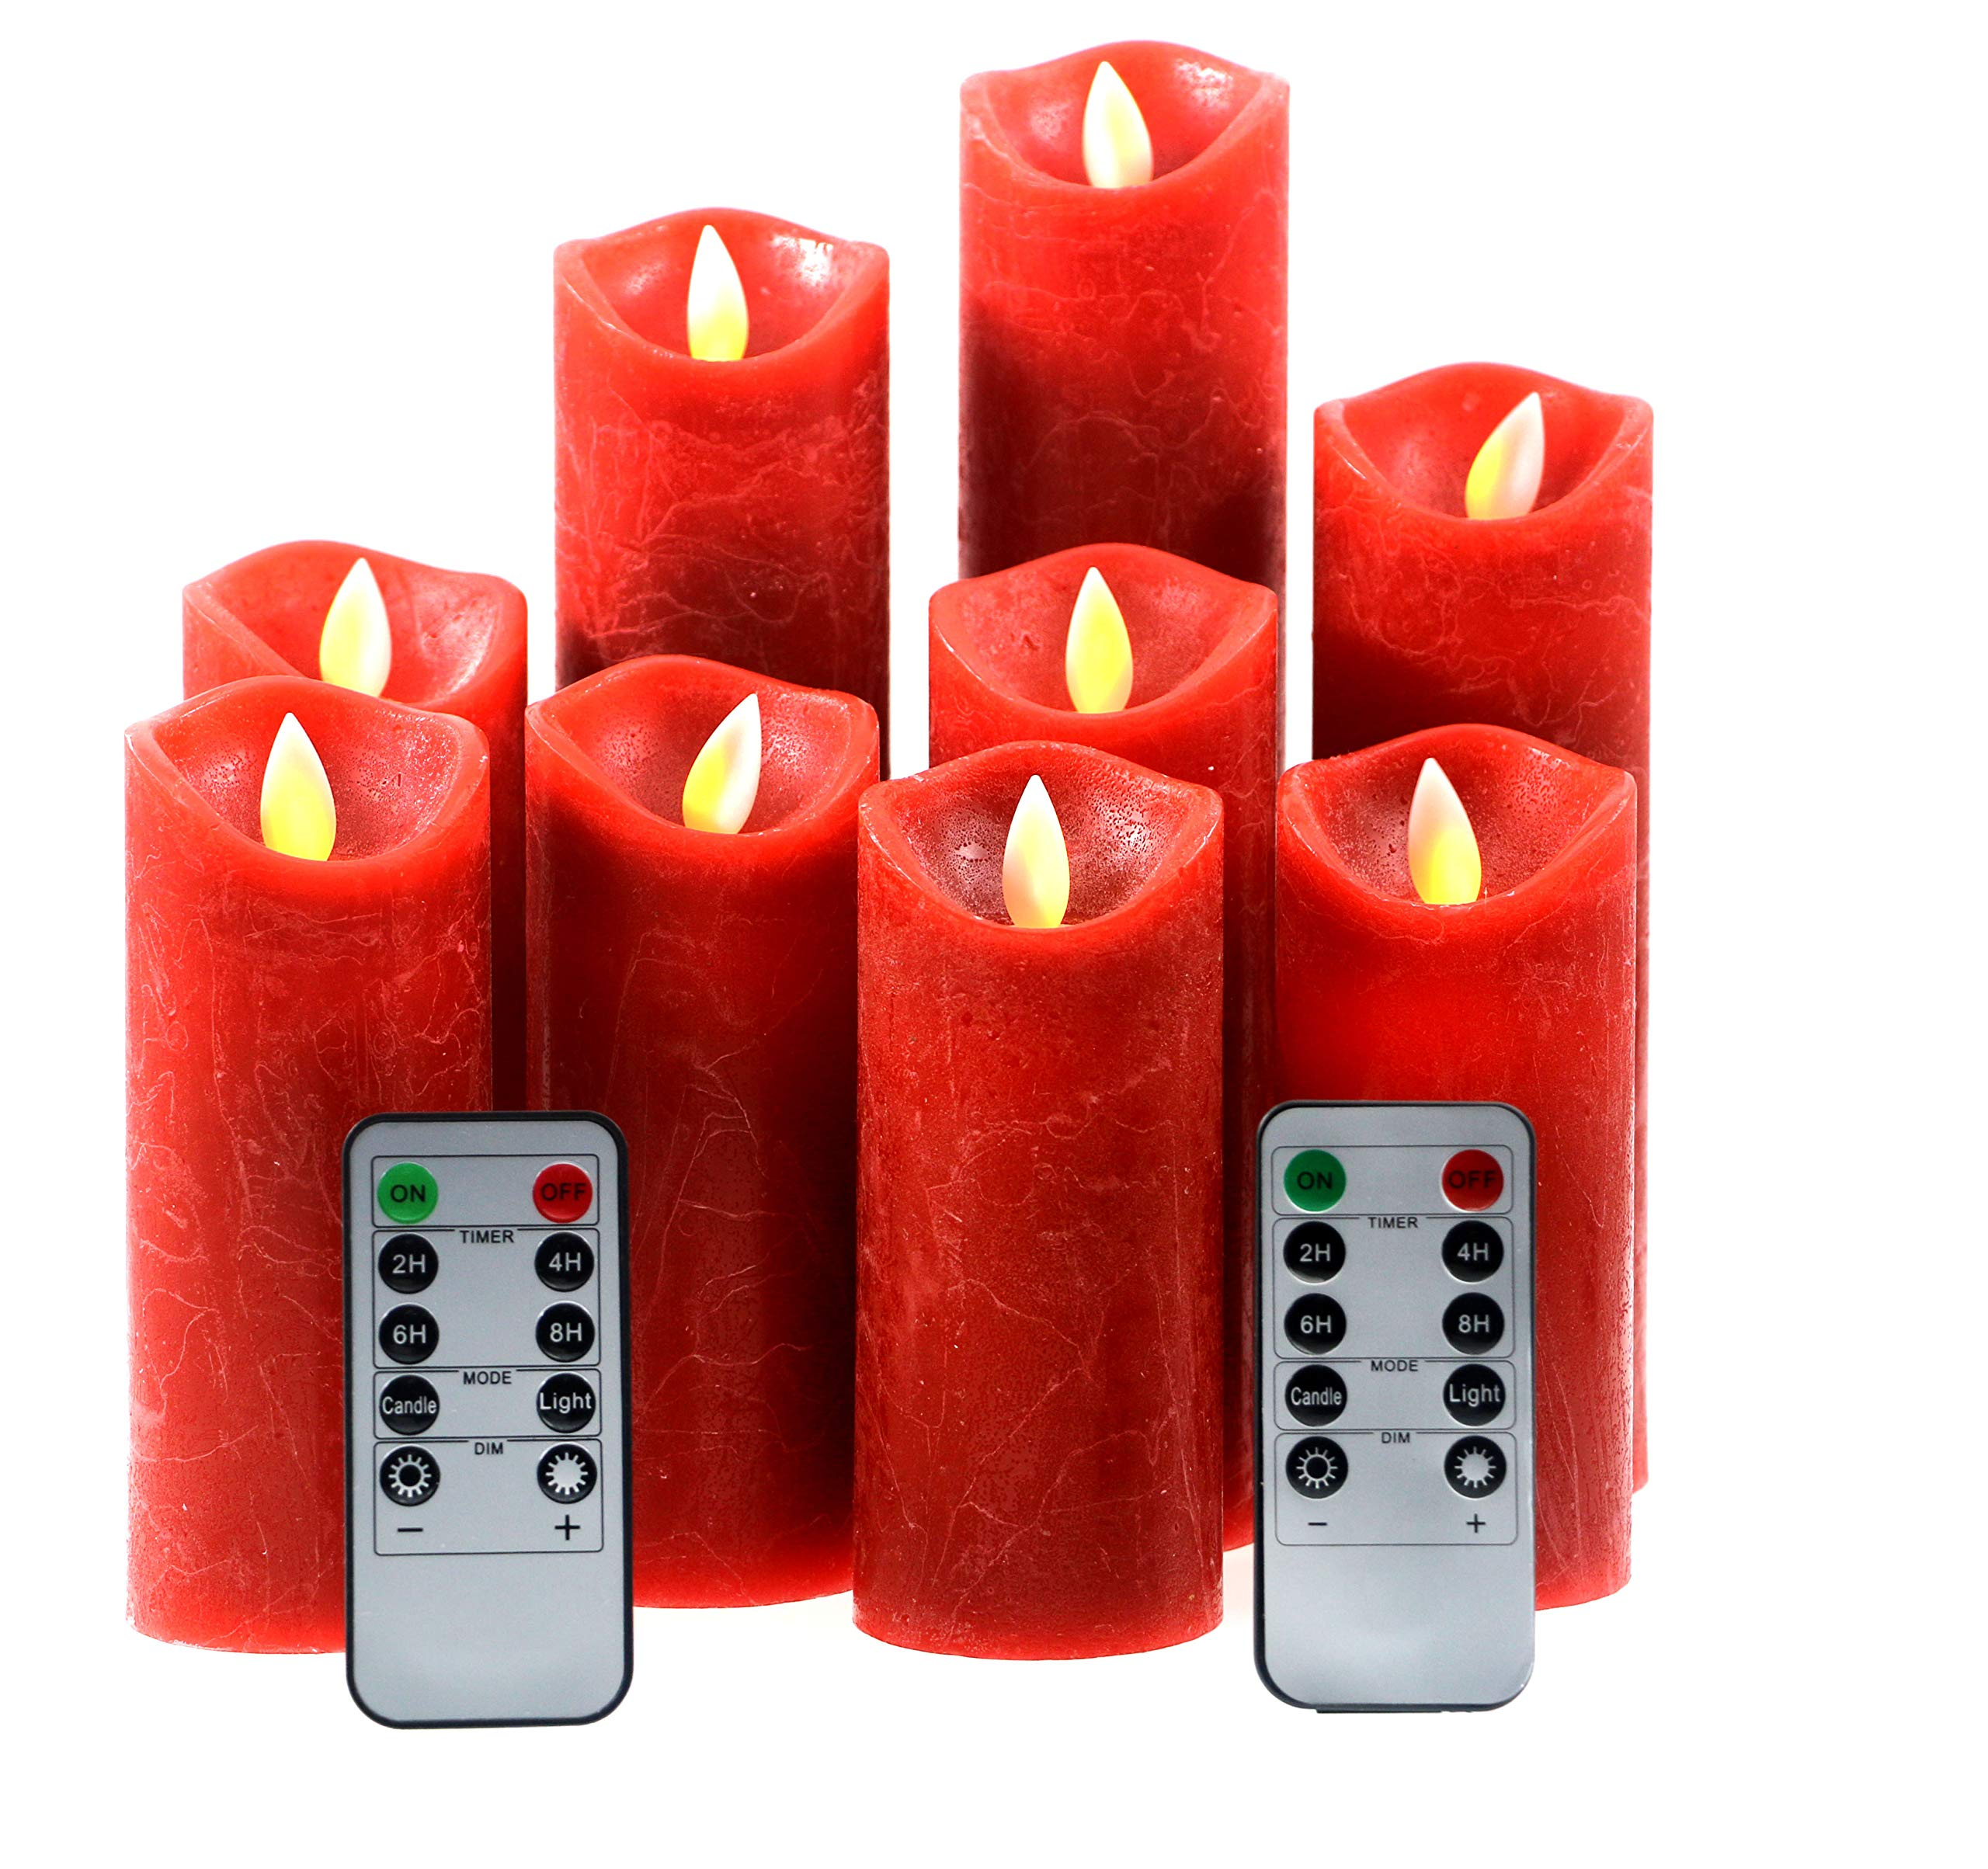 Kitch Aroma Red flameless Candles, Battery Operated LED Pillar Candles with Moving Flame Wick with Remote Timer,Pack of 9 by Kitch Aroma